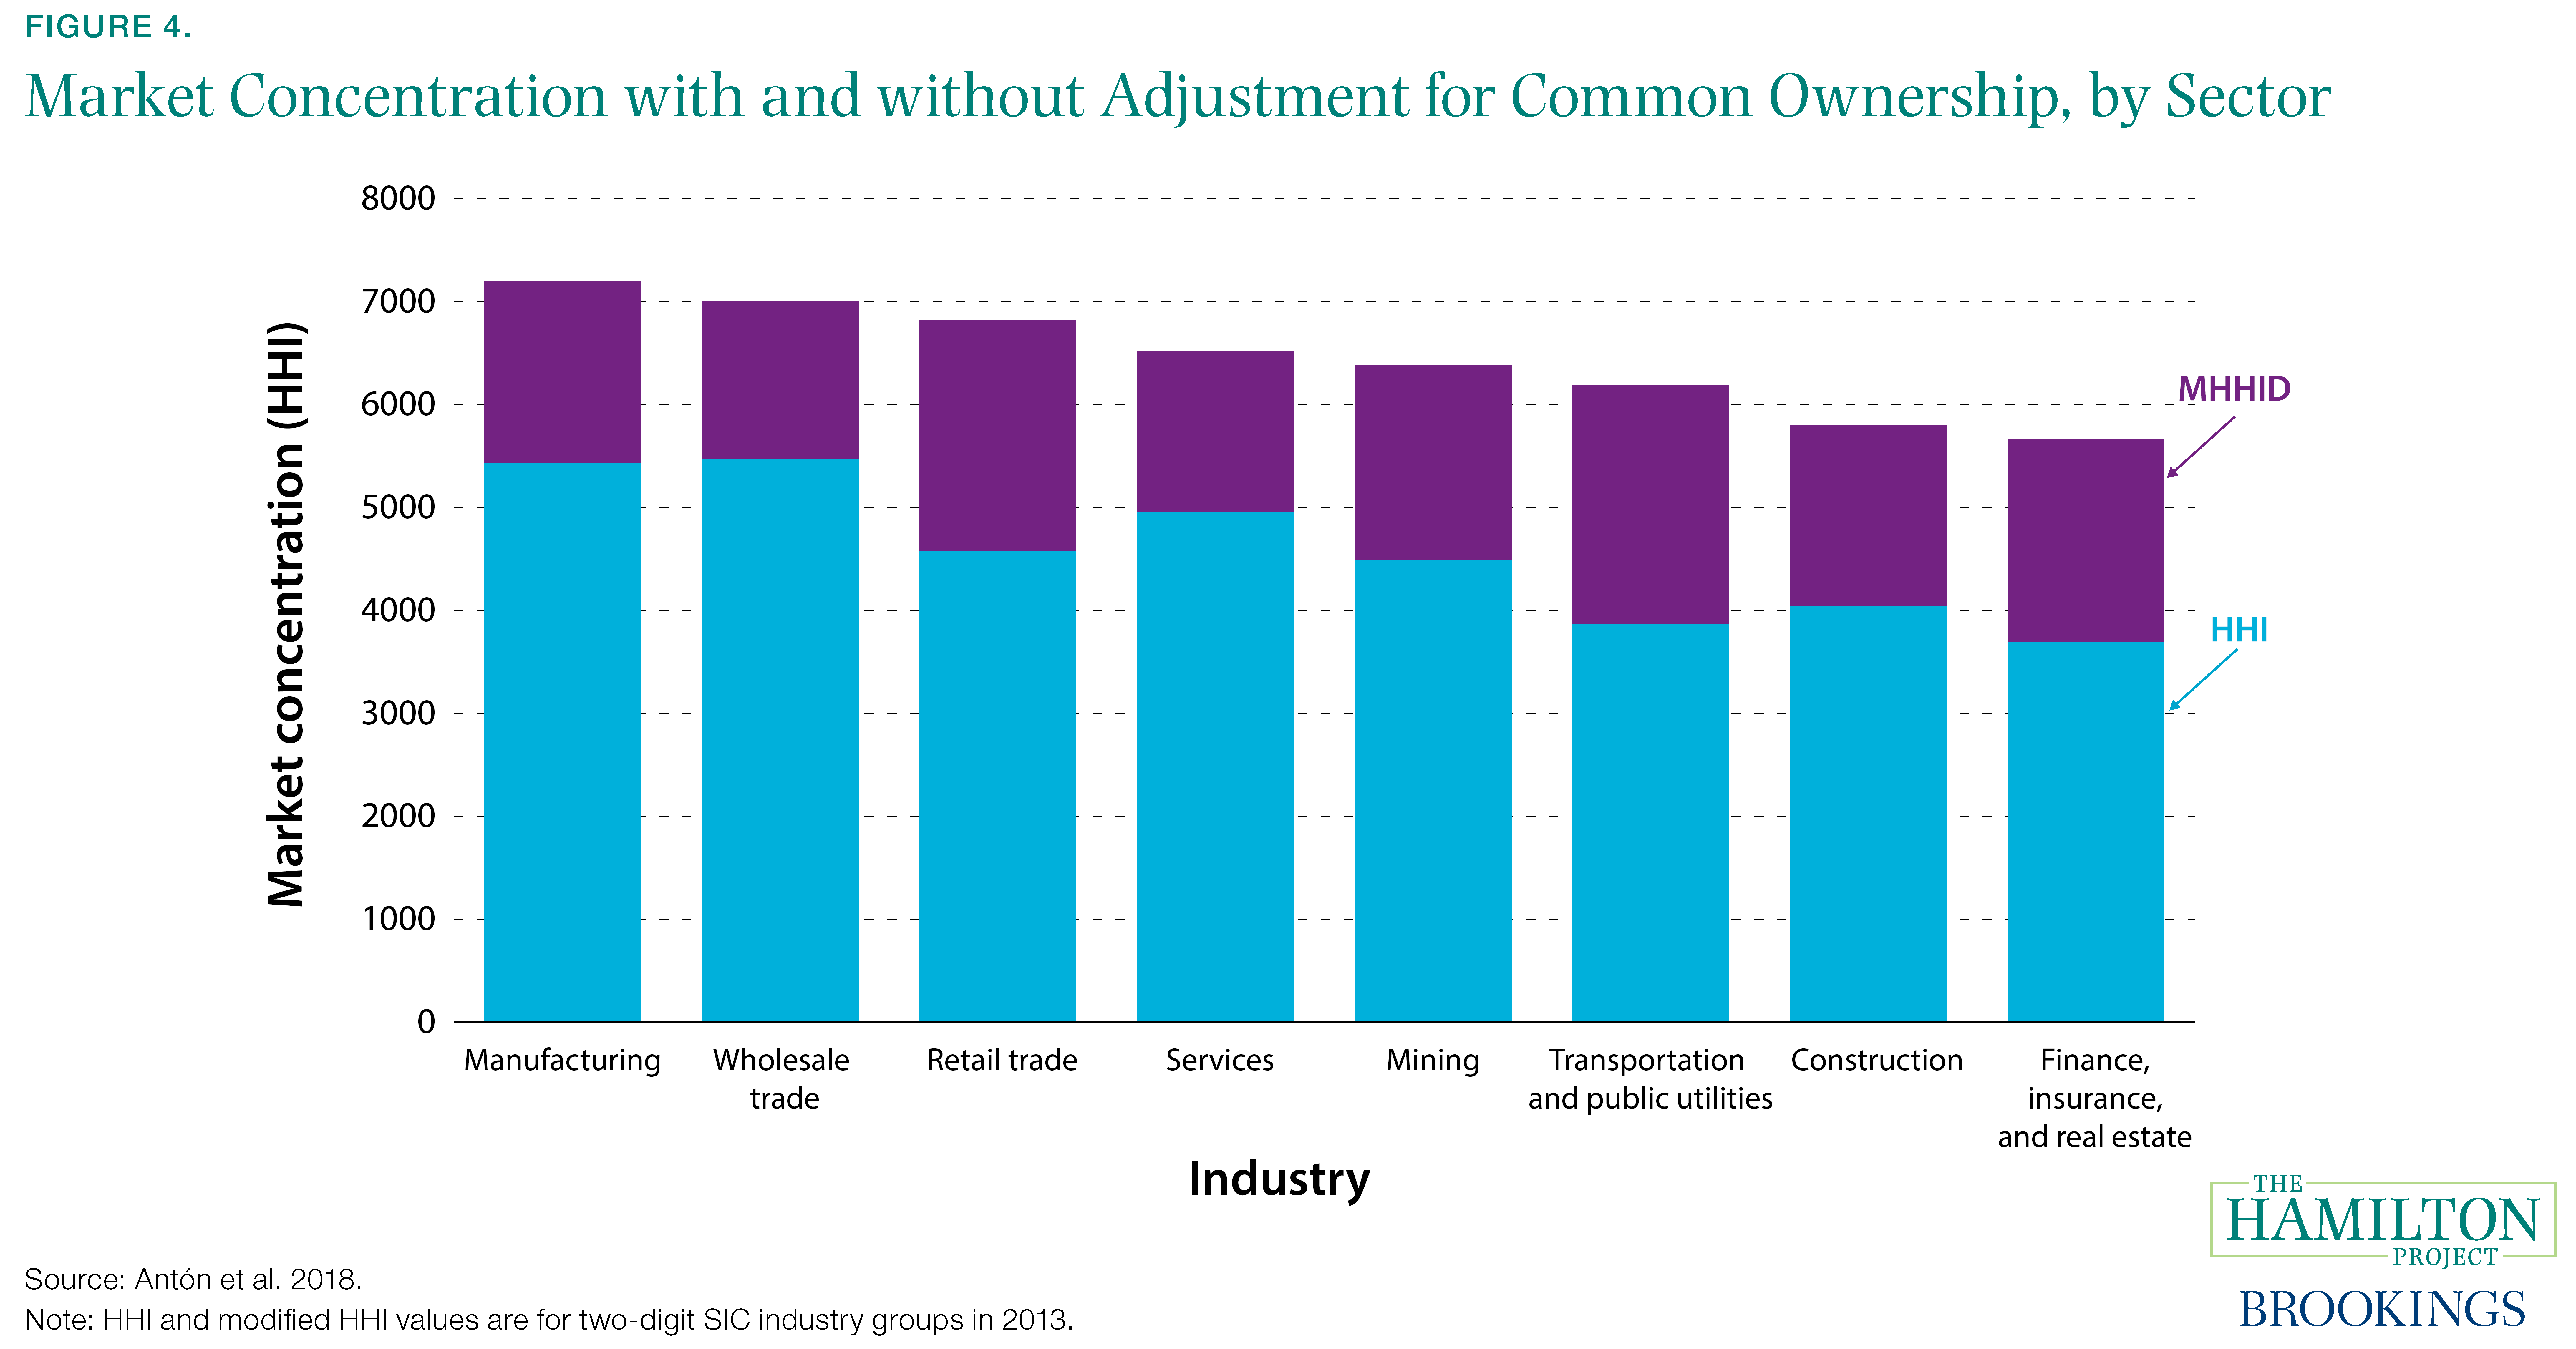 Figure 4. Market Concentration with and without Adjustment for Common Ownership, by Sector